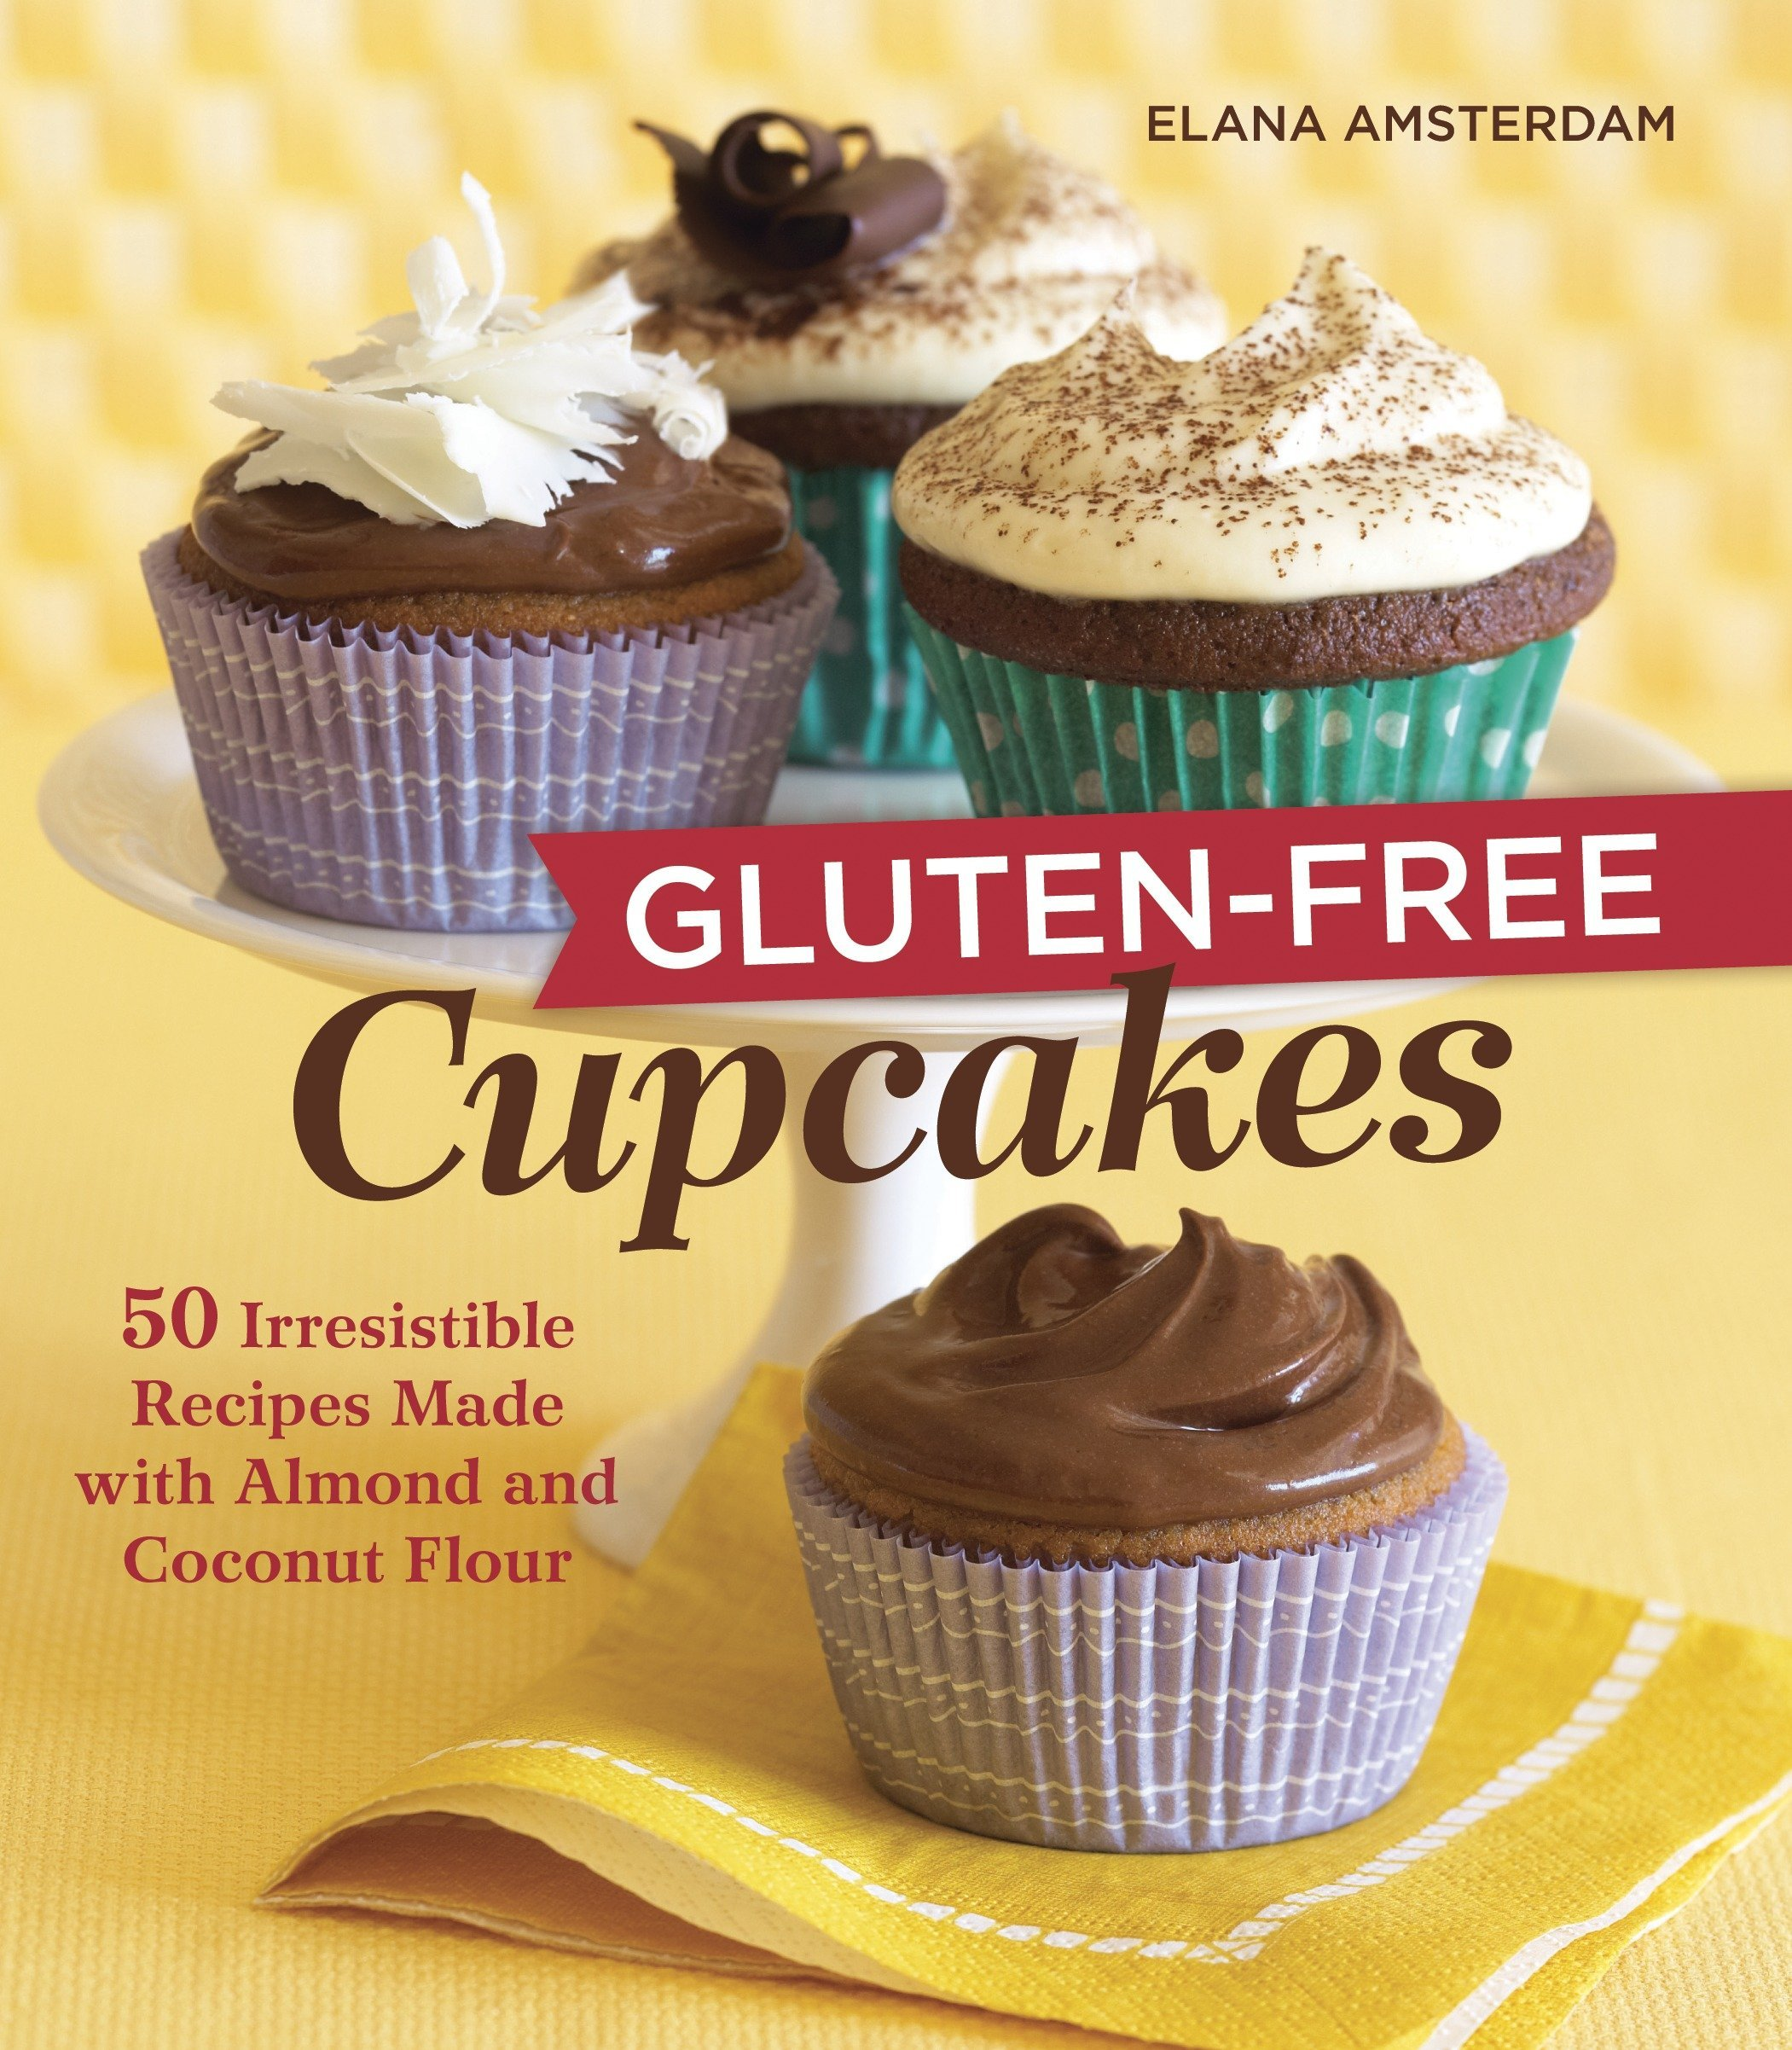 Gluten Free Cupcakes 50 Irresistible Recipes Made With